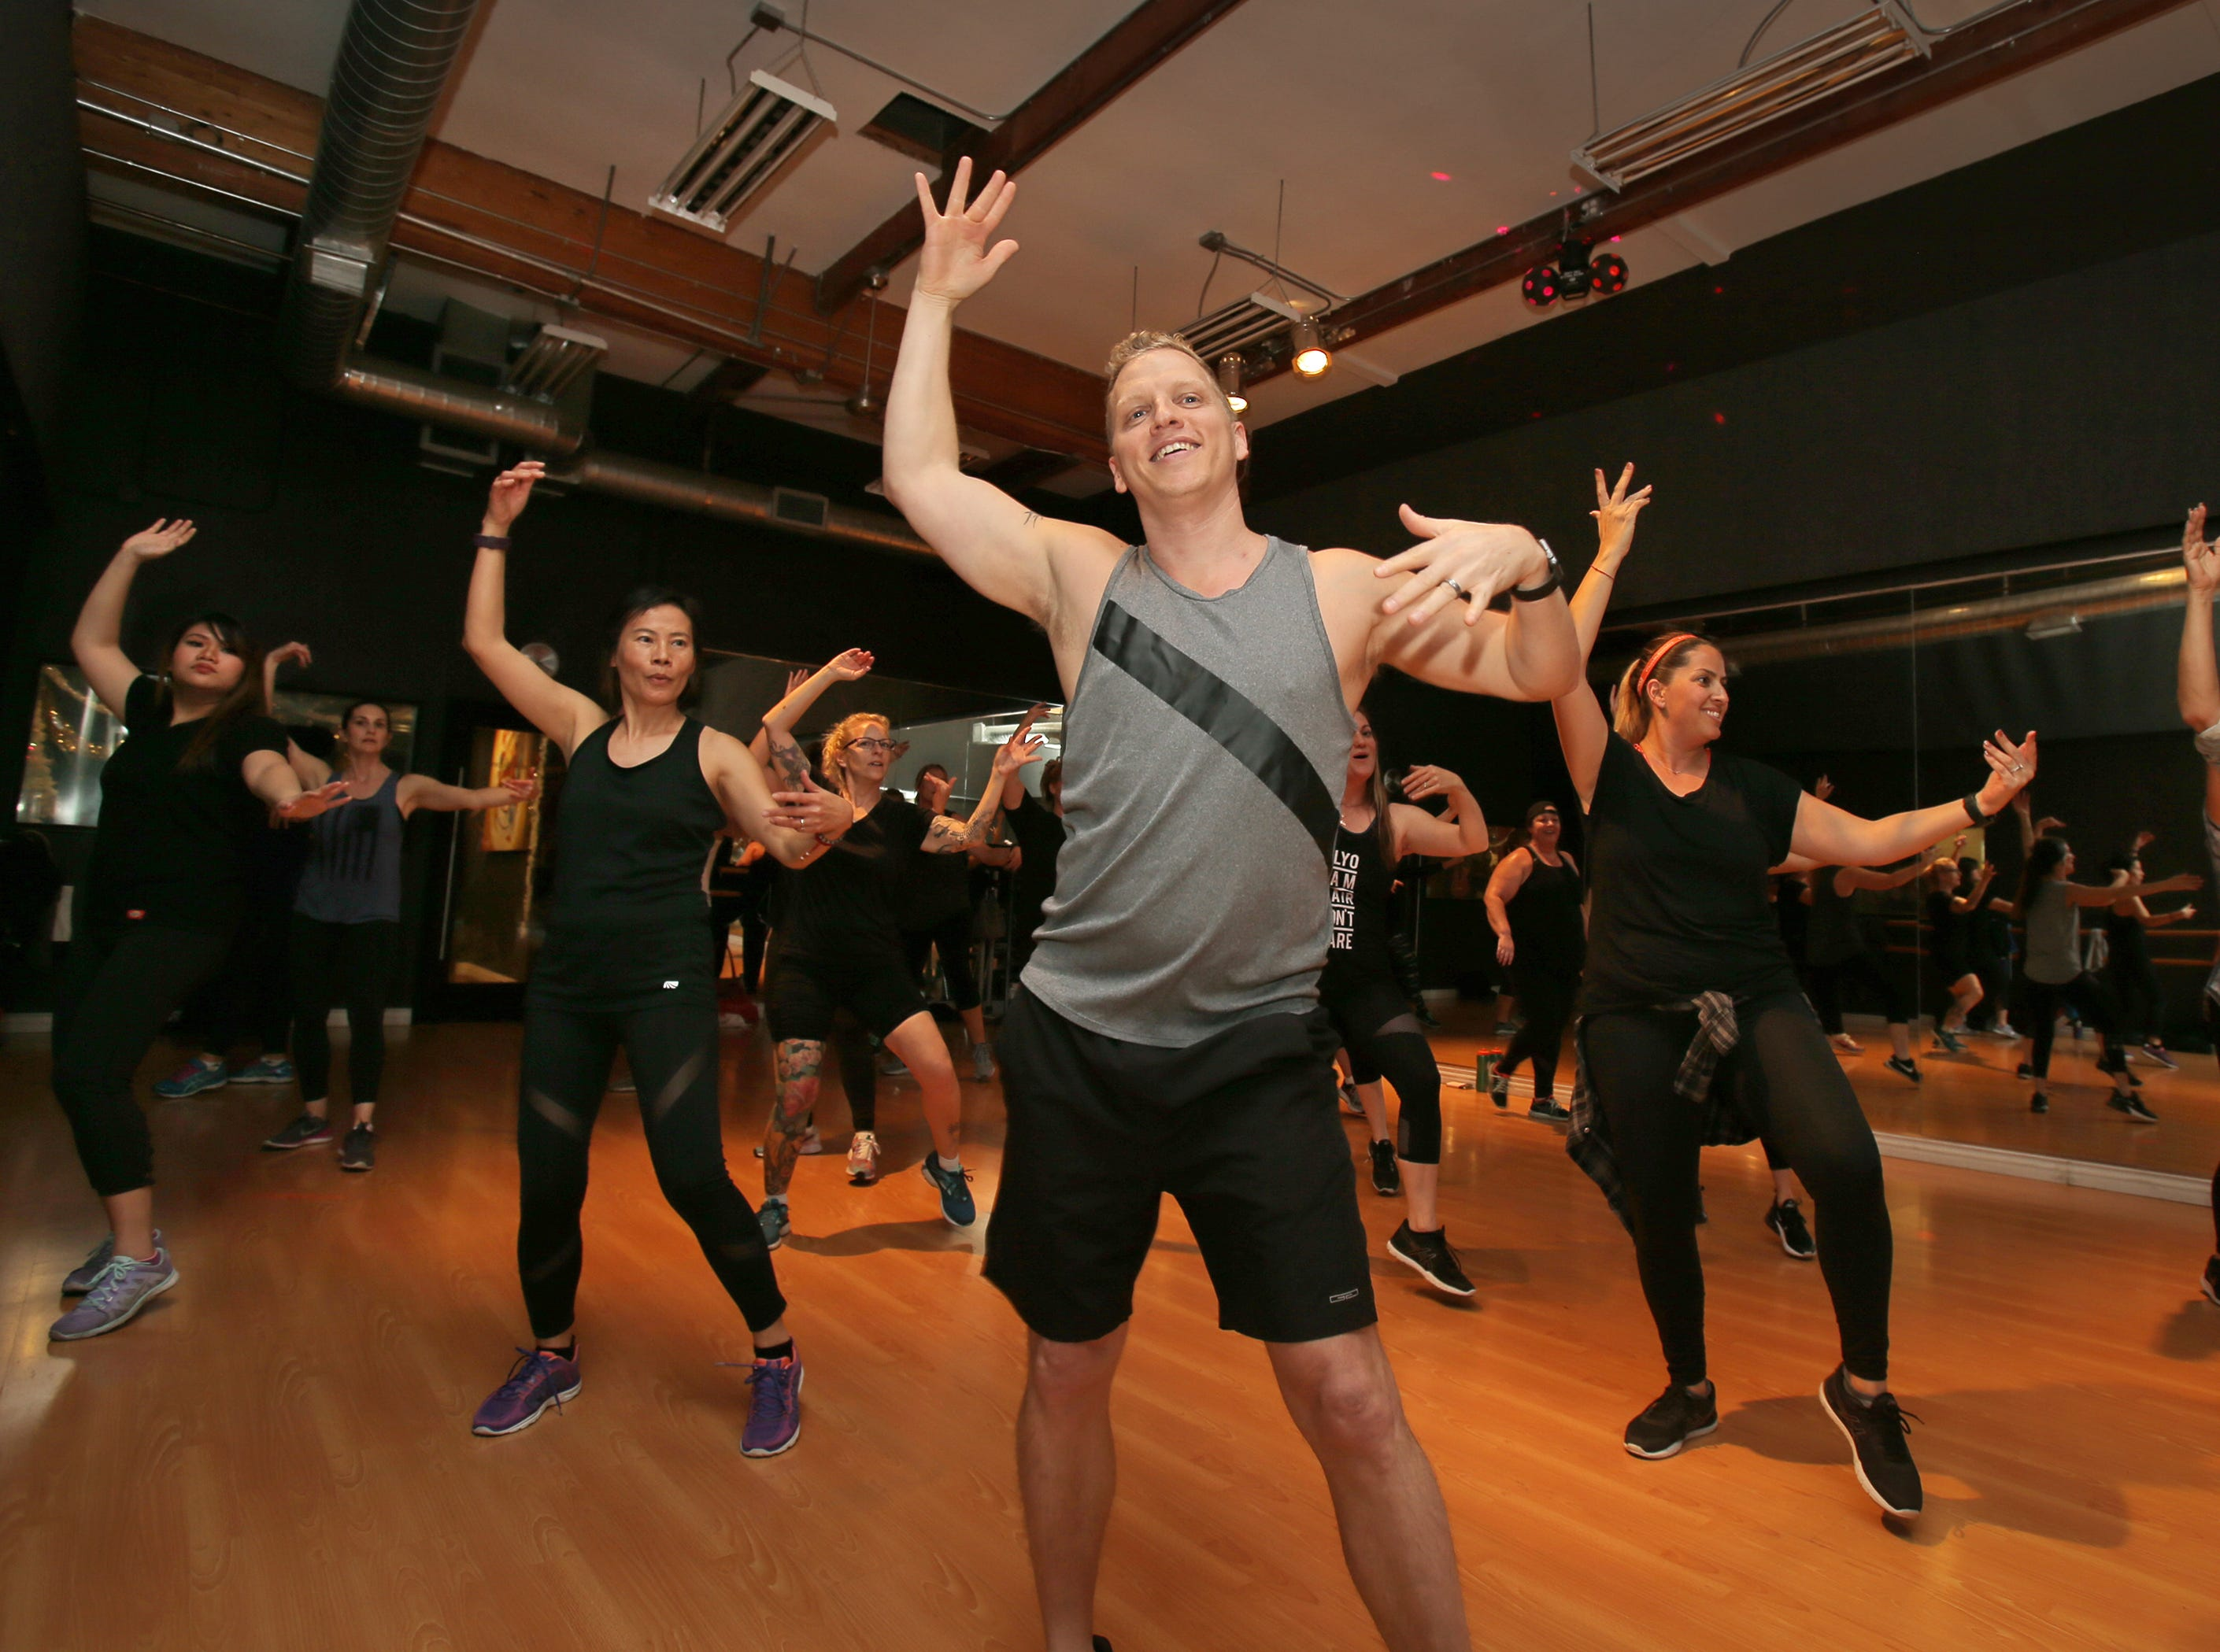 PlyoJam creater and co-founder Jason Layden works out with one of his classes at RockIt Dance Studio in Westlake Village. PlyoJam offers a high-energy cardio fitness class that is blended with hip-hop dance moves and has attracted followers that include actress Reese Witherspoon.